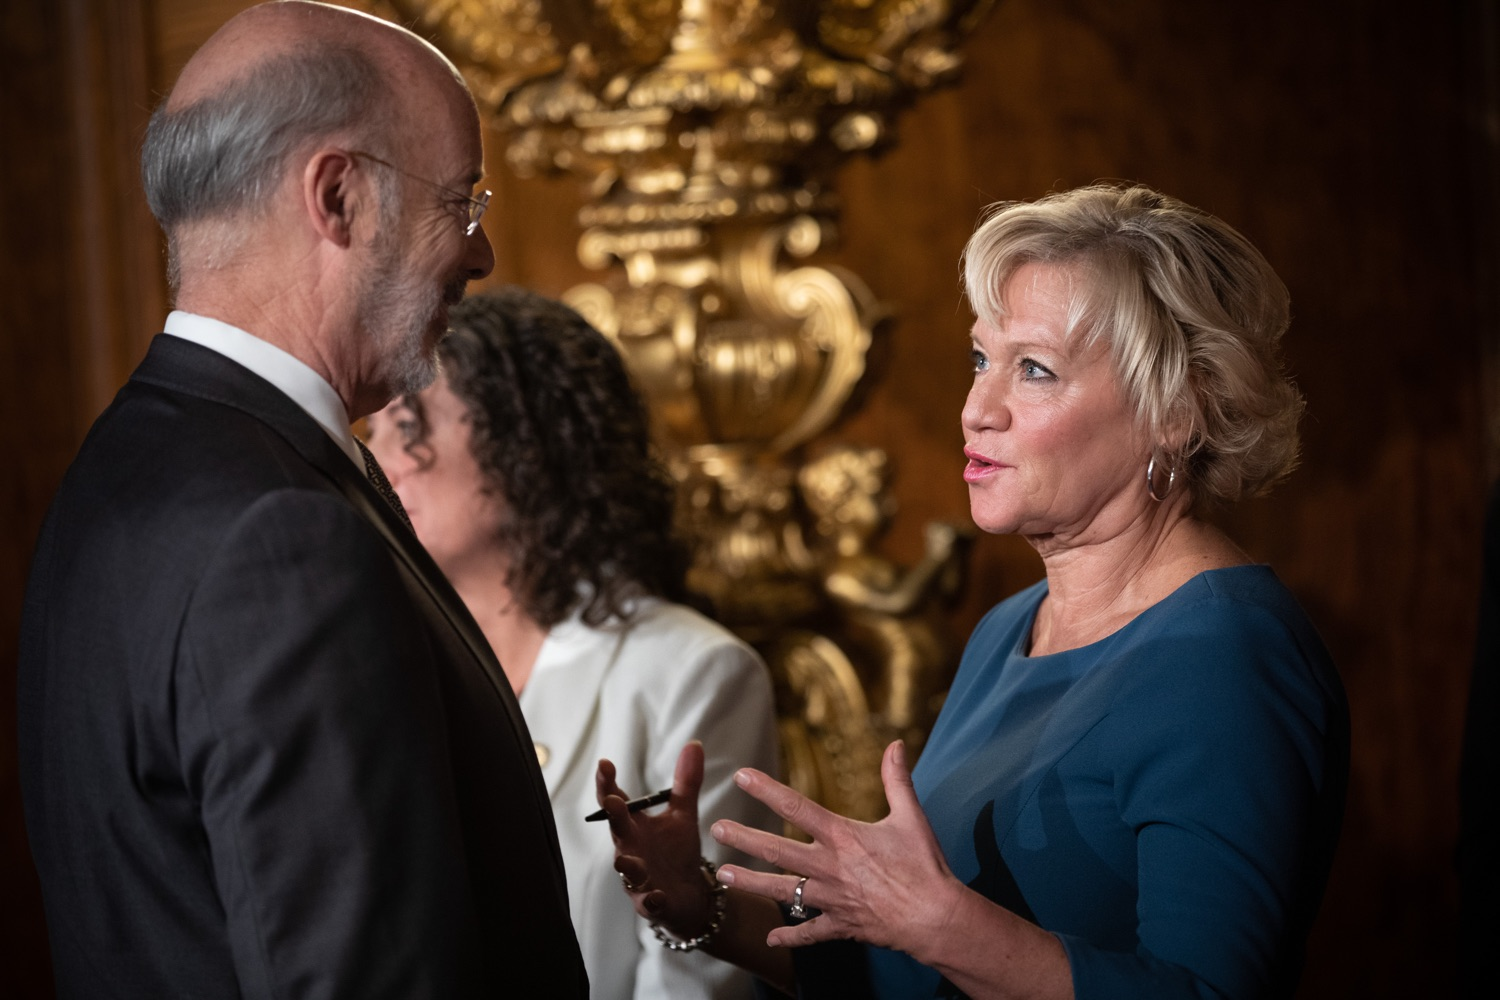 "<a href=""http://filesource.abacast.com/commonwealthofpa/photo/17554_gov_voter_reform_bill_dz_015.jpg"" target=""_blank"">⇣ Download Photo<br></a>Harrisburg, PA  Sen. Lisa Boscola and Governor Tom Wolf  at the Election Reform Bill signing. Governor Wolf made voting more convenient and secure by signing Act 77 of 2019, the most significant improvement to Pennsylvanias elections in more than 80 years. The bipartisan compromise legislation takes effect for the April 2020 primary election and makes Pennsylvania a national leader with voter-friendly election reforms."